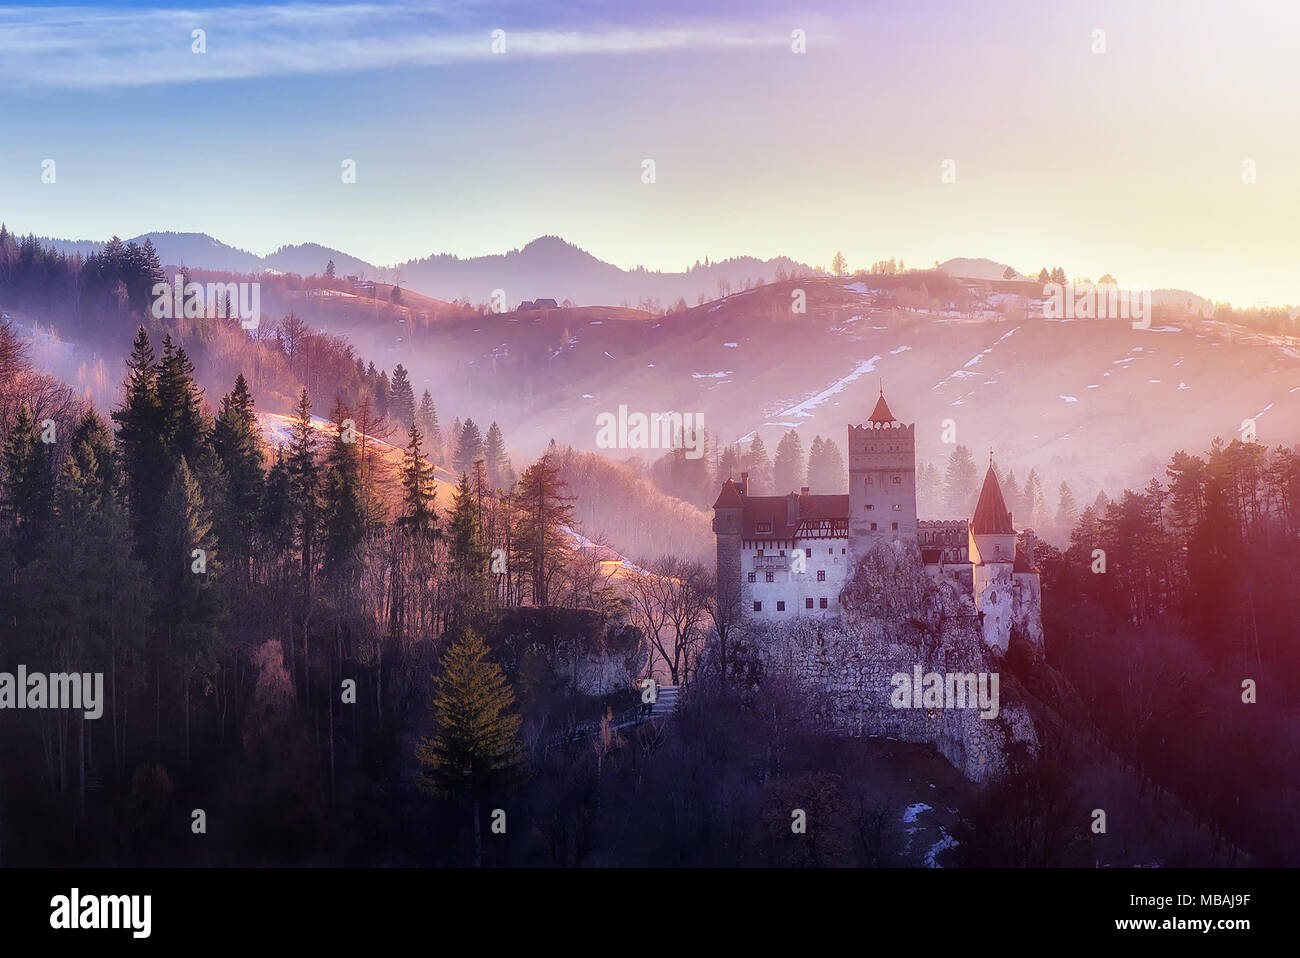 Bran or Dracula Castle in Transylvania, Romania. The castle is located on top of a mountain, sunset light - Stock Image